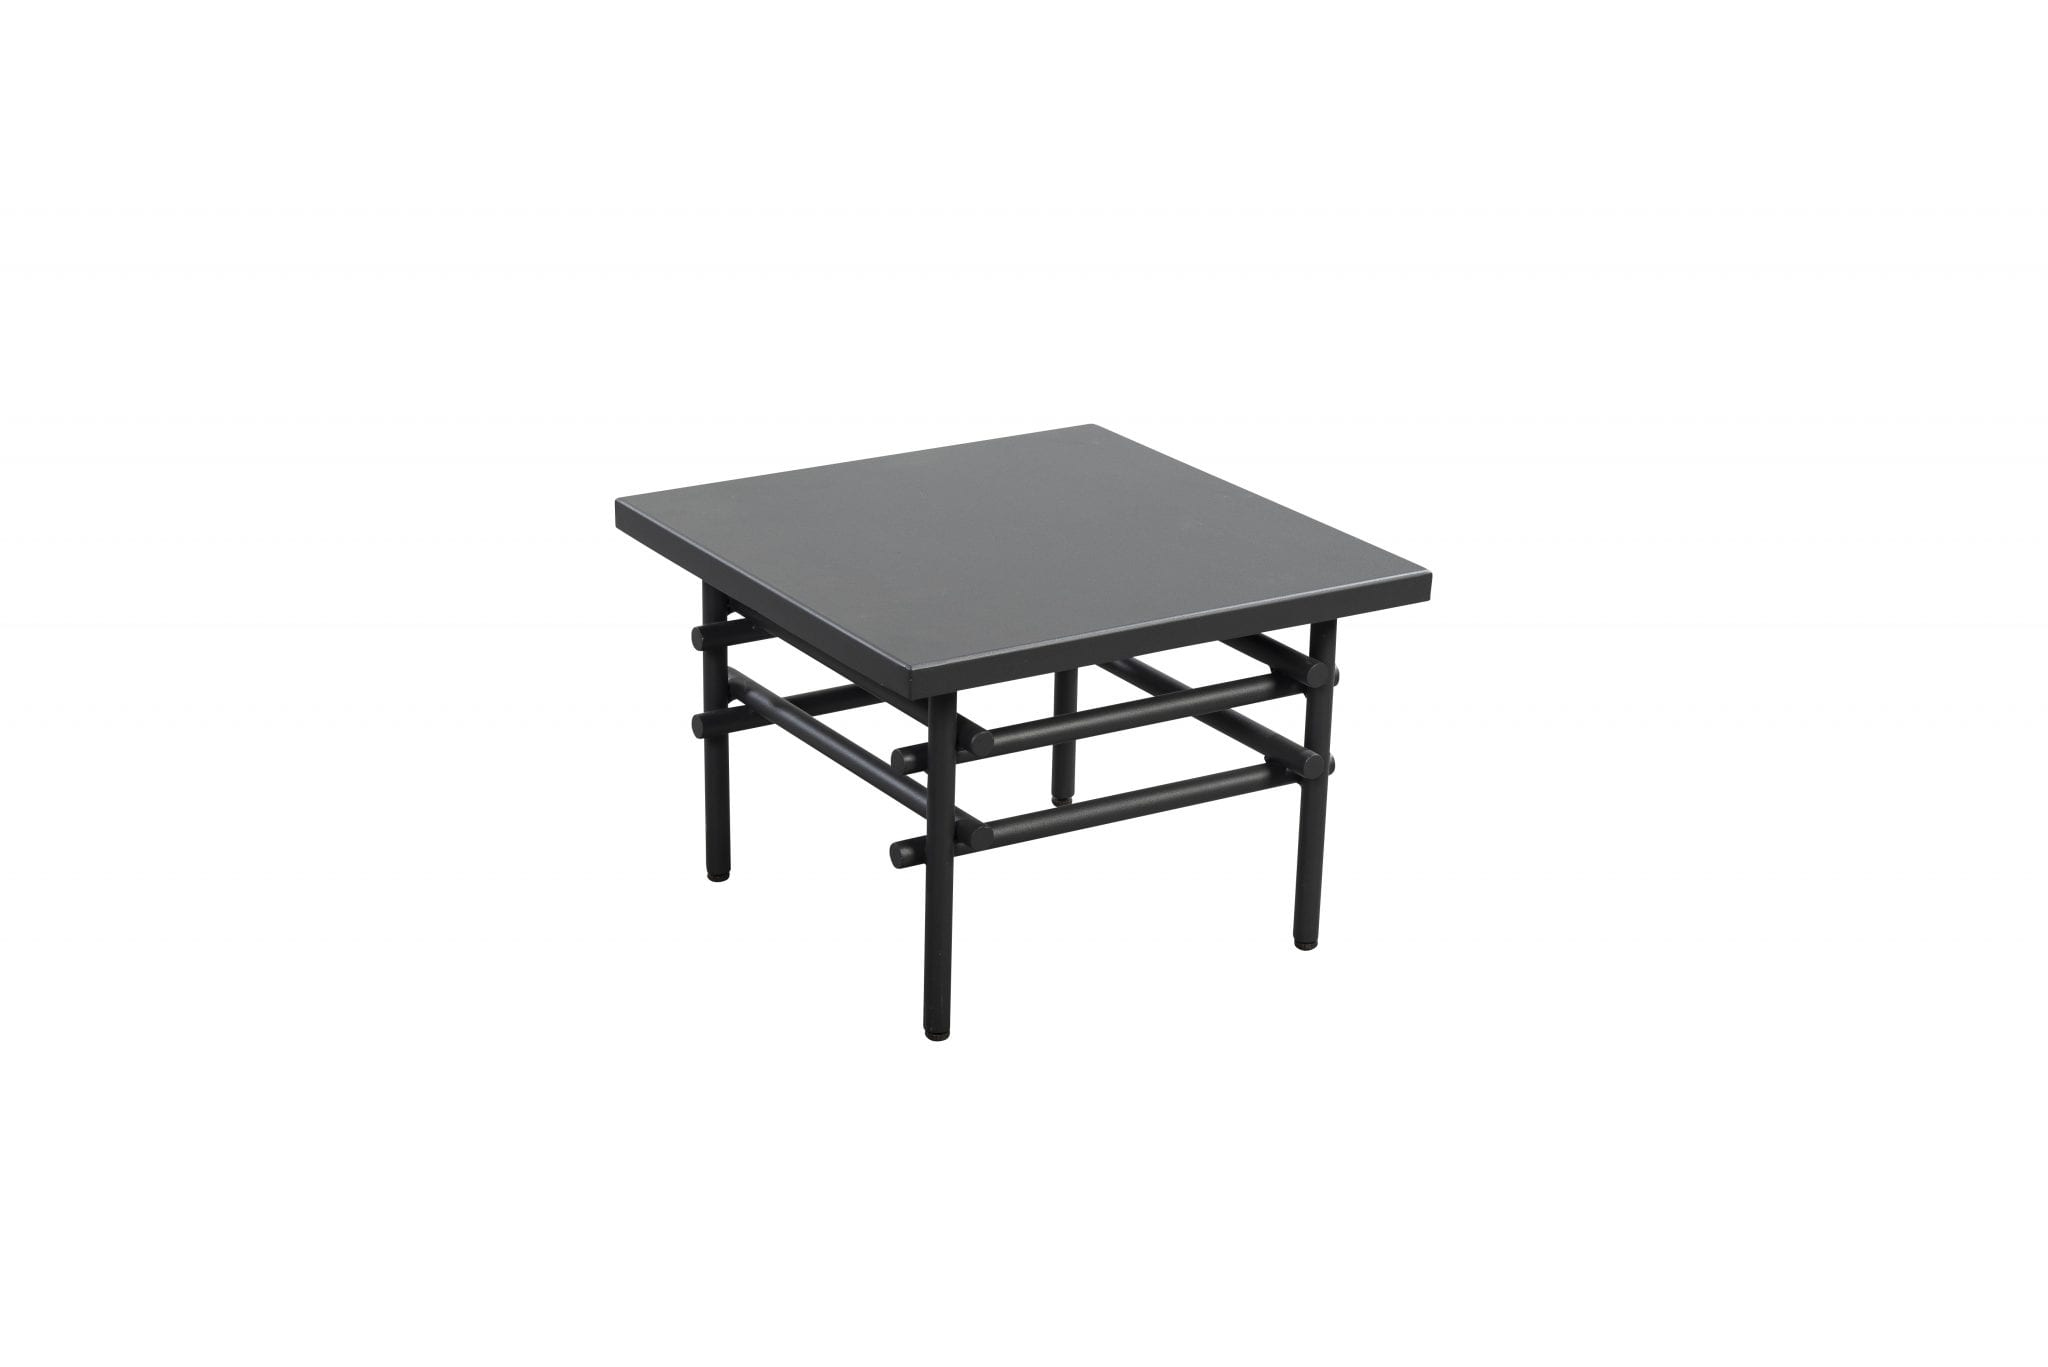 Ki 50x50 aluminium side table - dark grey | Yoi Furniture